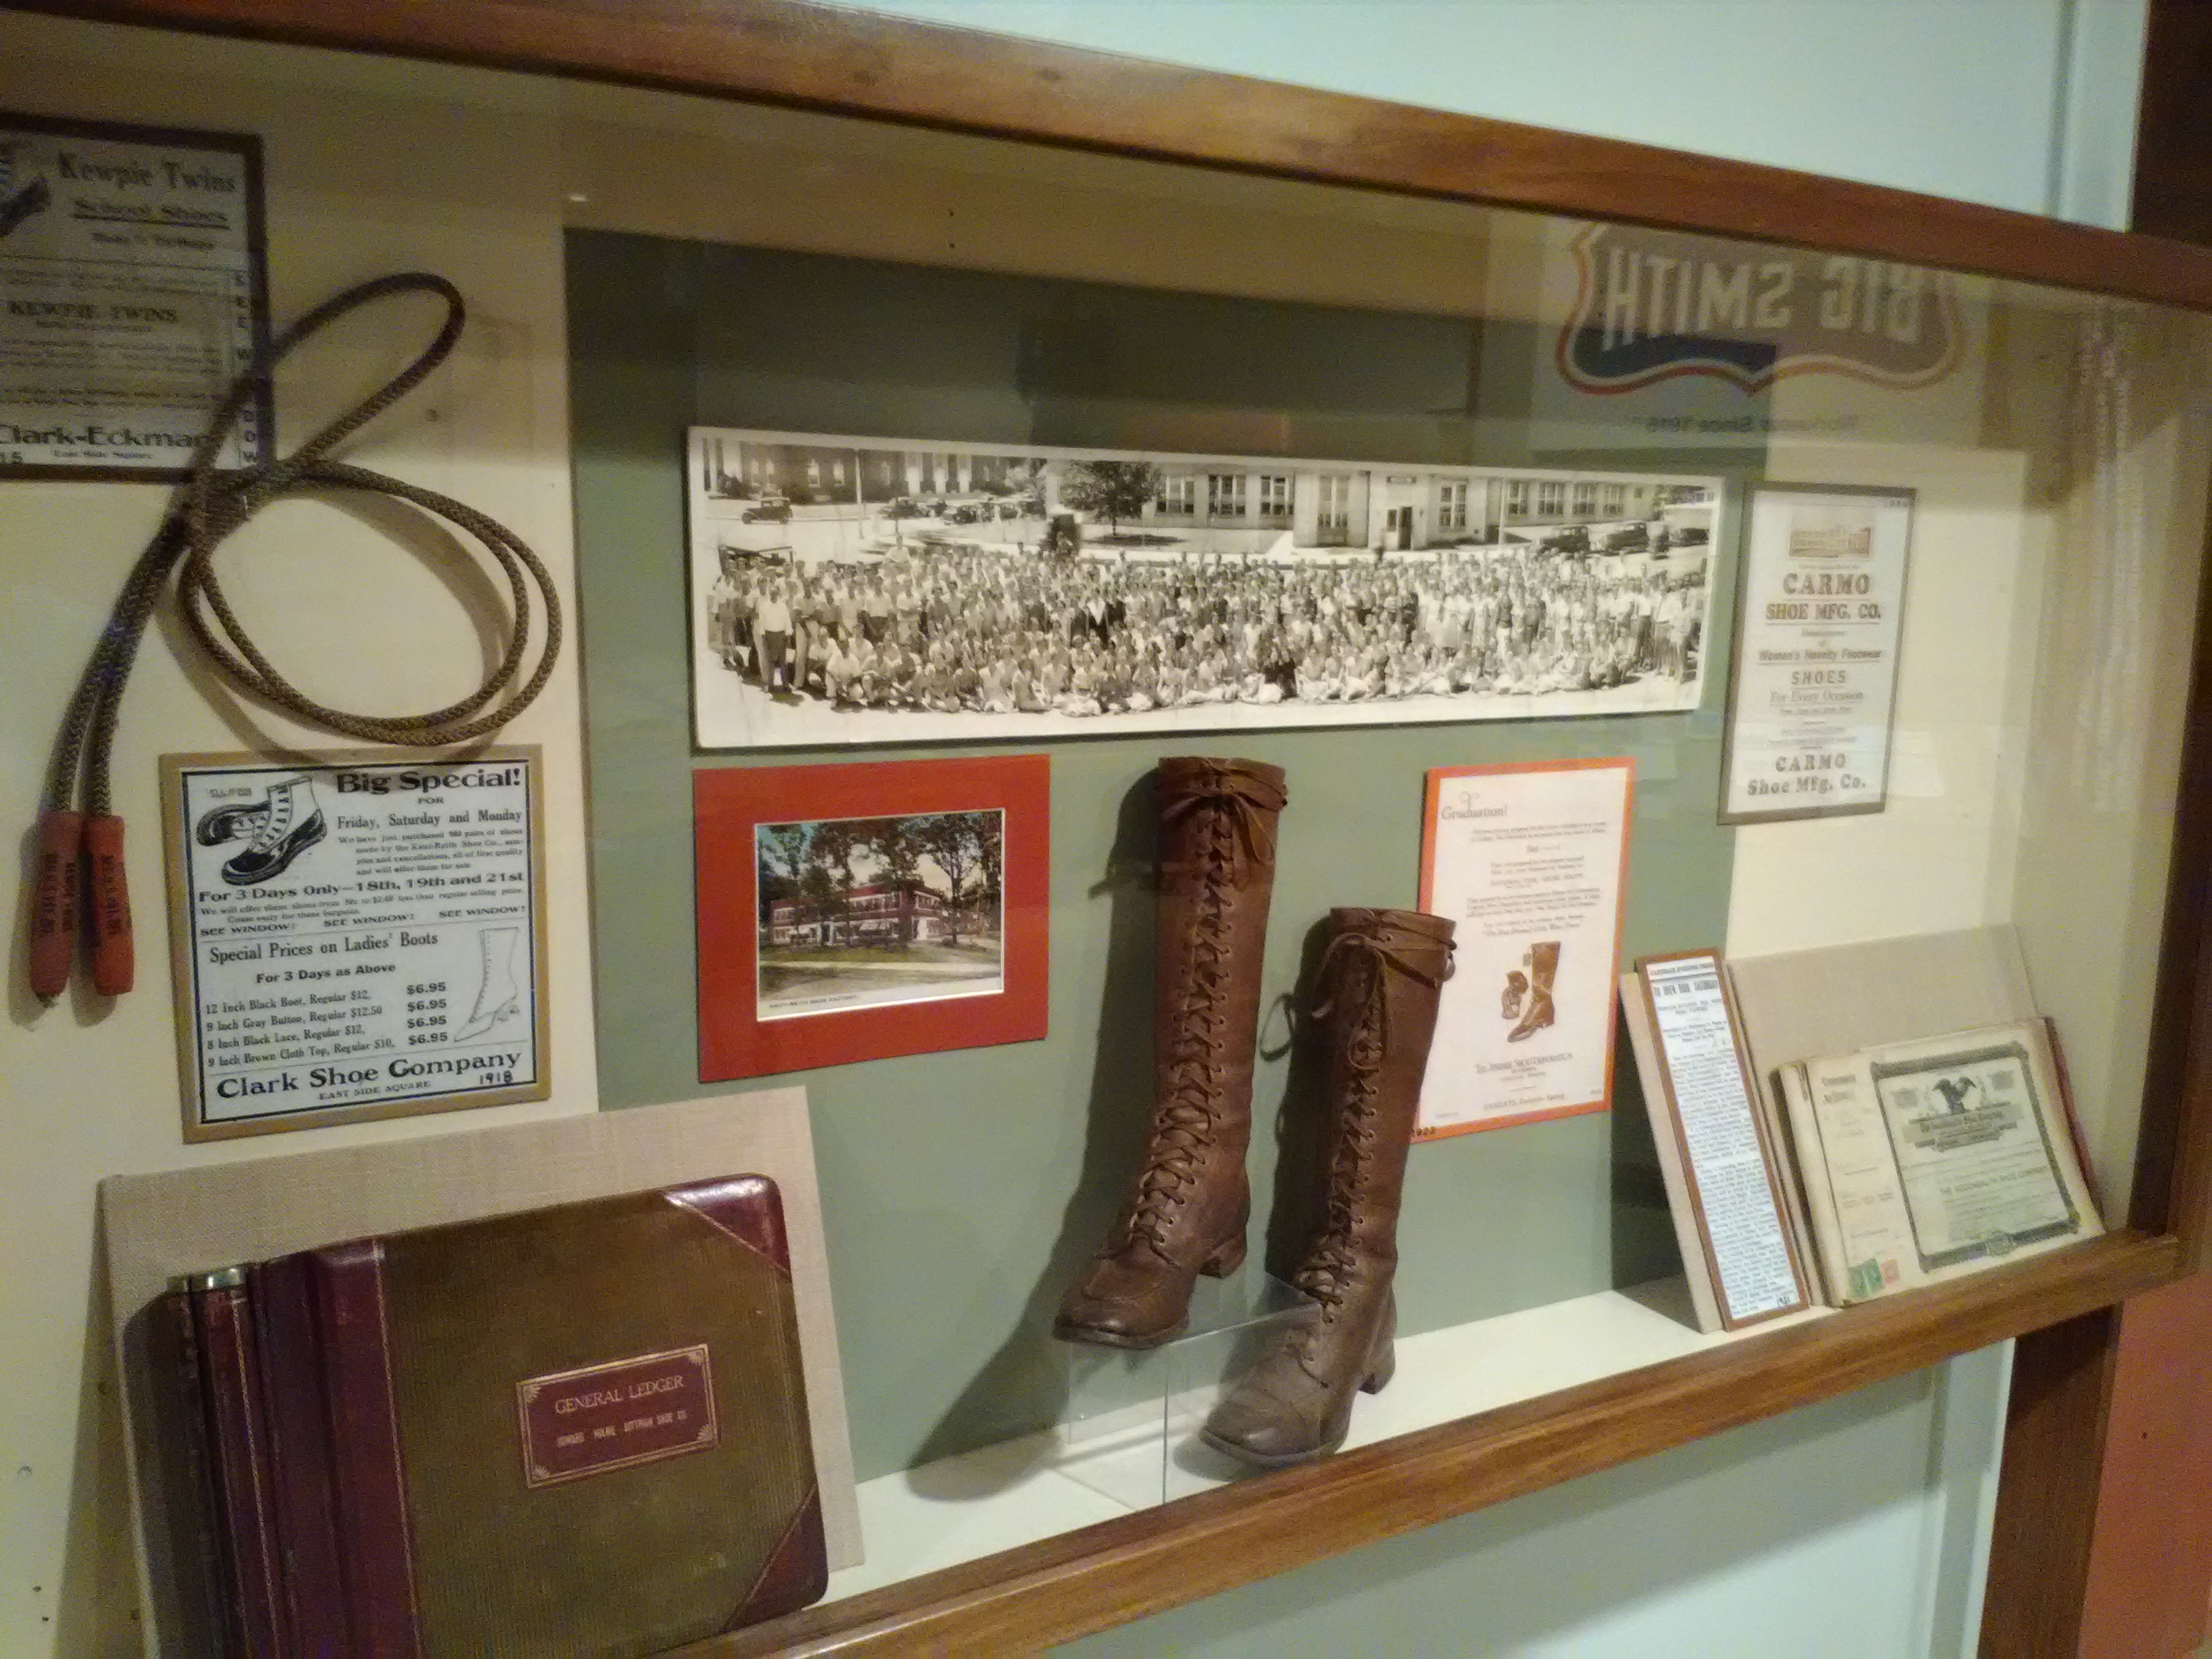 2017  Carthage, Missouri, had a large shoe manufacturing industry in the 1910-30s. Today only one manufacturer remains (Justin Boots). This display showed products, advertising, photos and ledgers of some of the earlier shoe factories.